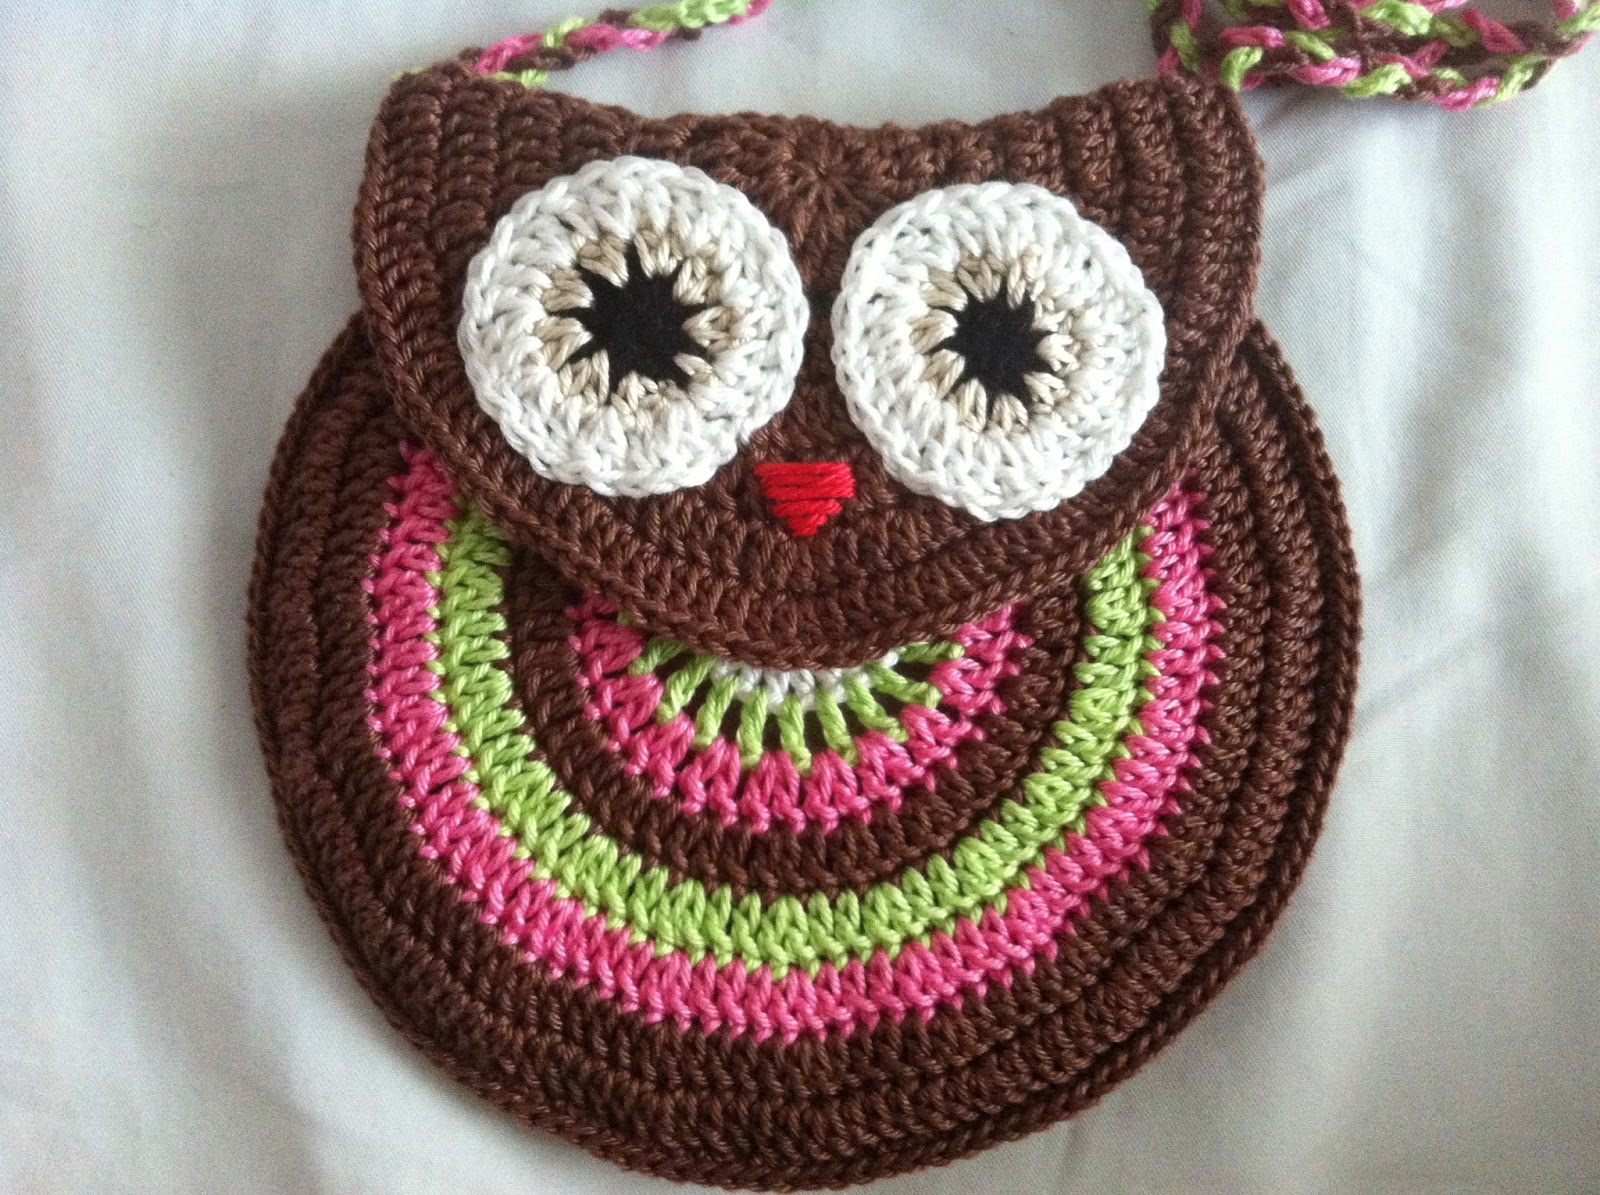 Free Crochet Handbag Patterns : 12 free crochet bag patterns Car Pictures